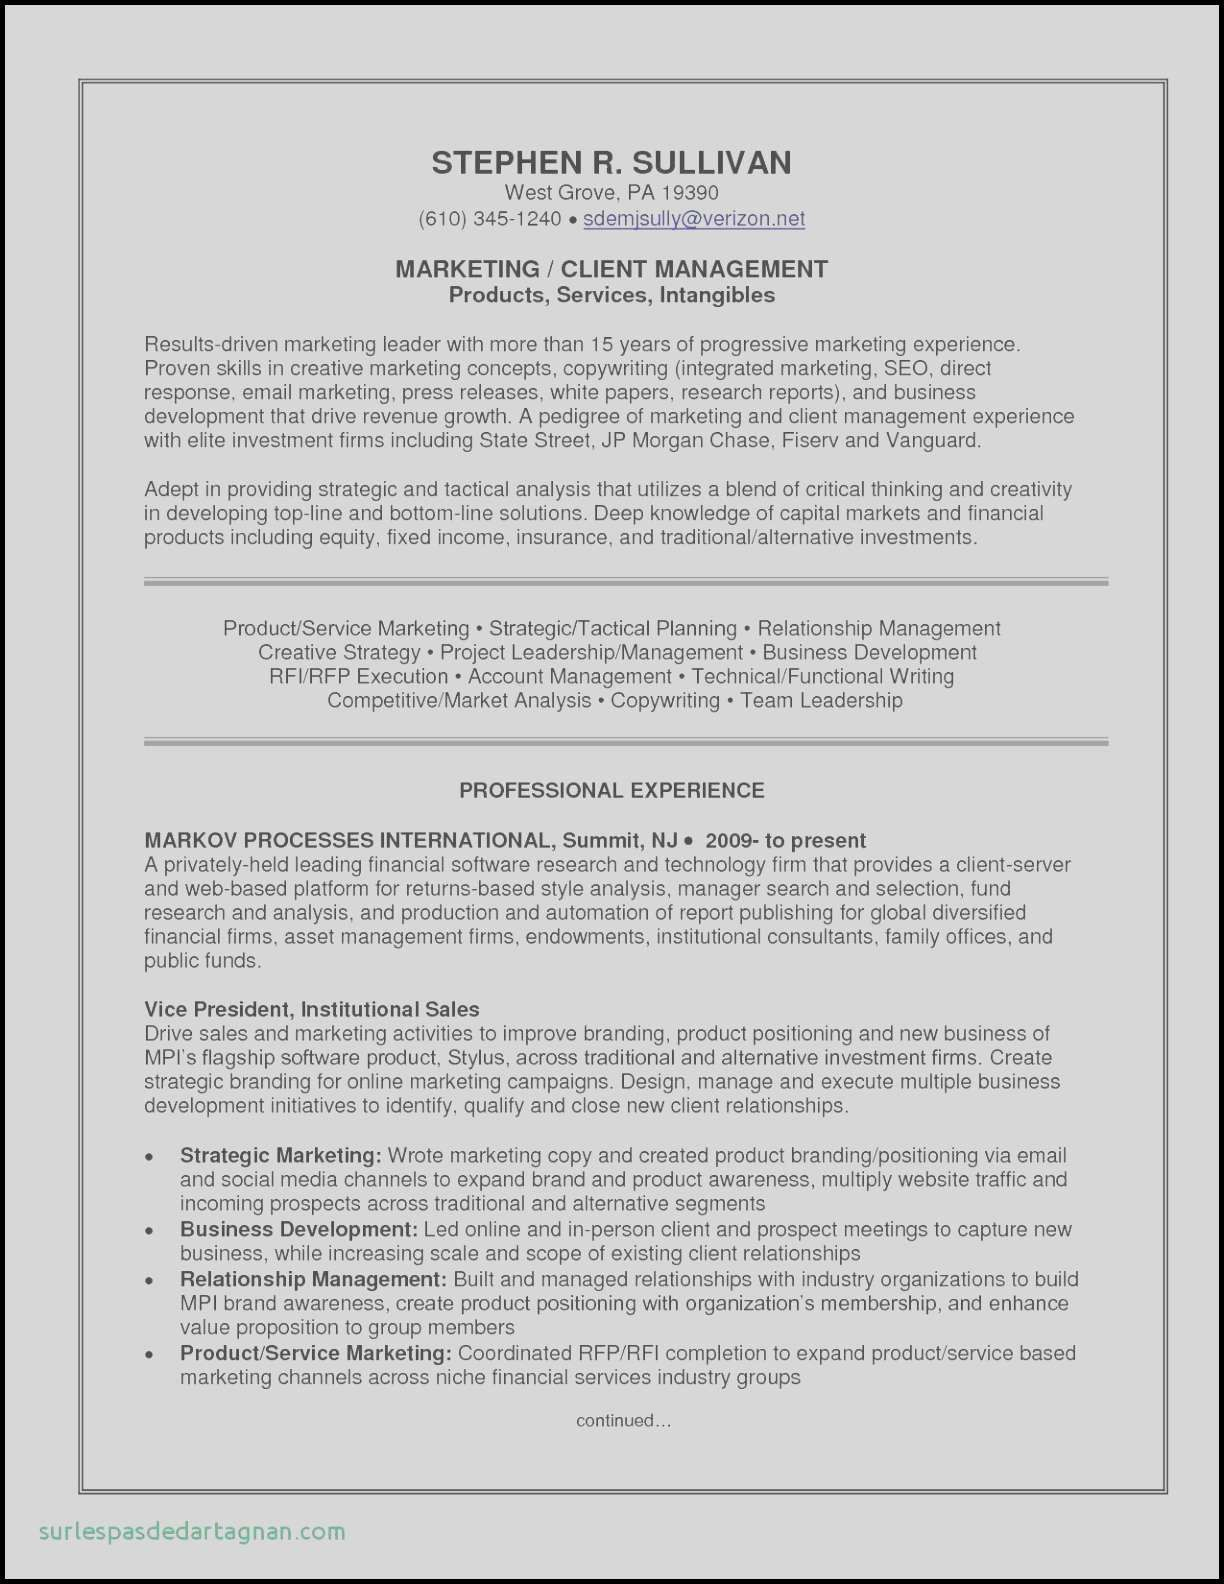 Production Report Template Marketing Resume Manager Resume Job